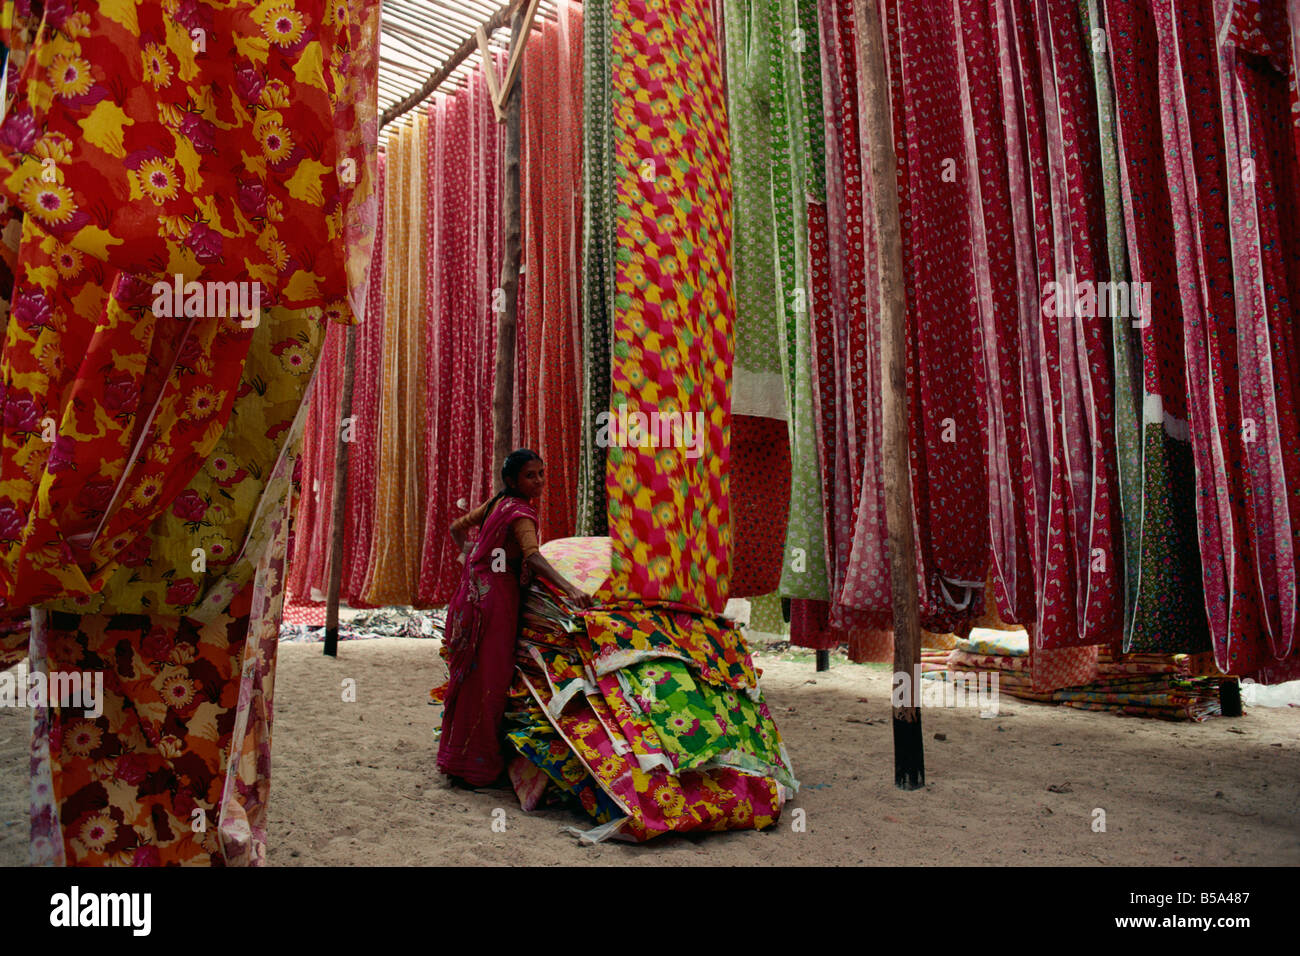 Screen print textiles Ahmedabad Gujarat India Asia - Stock Image